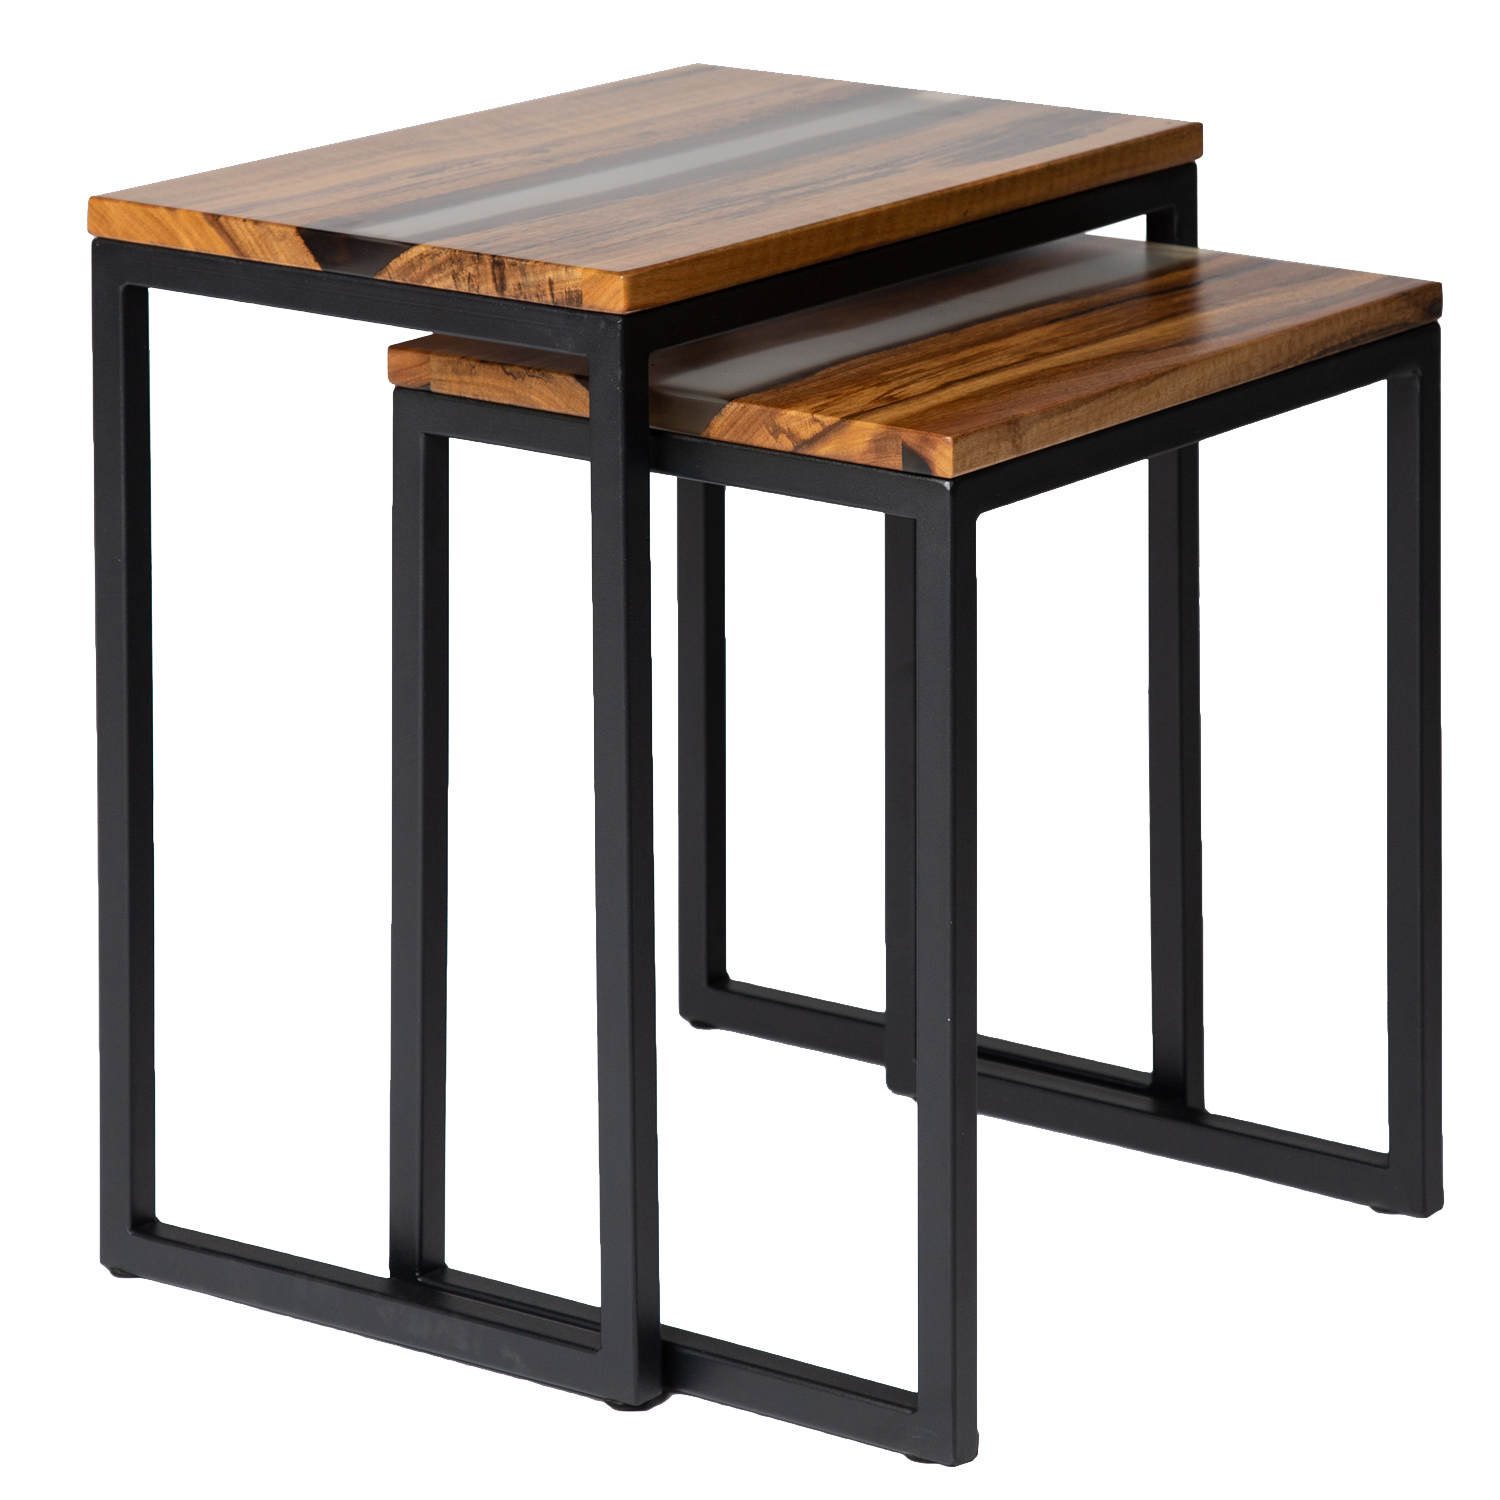 modern solid wood nesting table contemporary black end tables square for white bedroom nightstand ashley furniture marble top coffee bedside lamp size brown leather sofa lounge